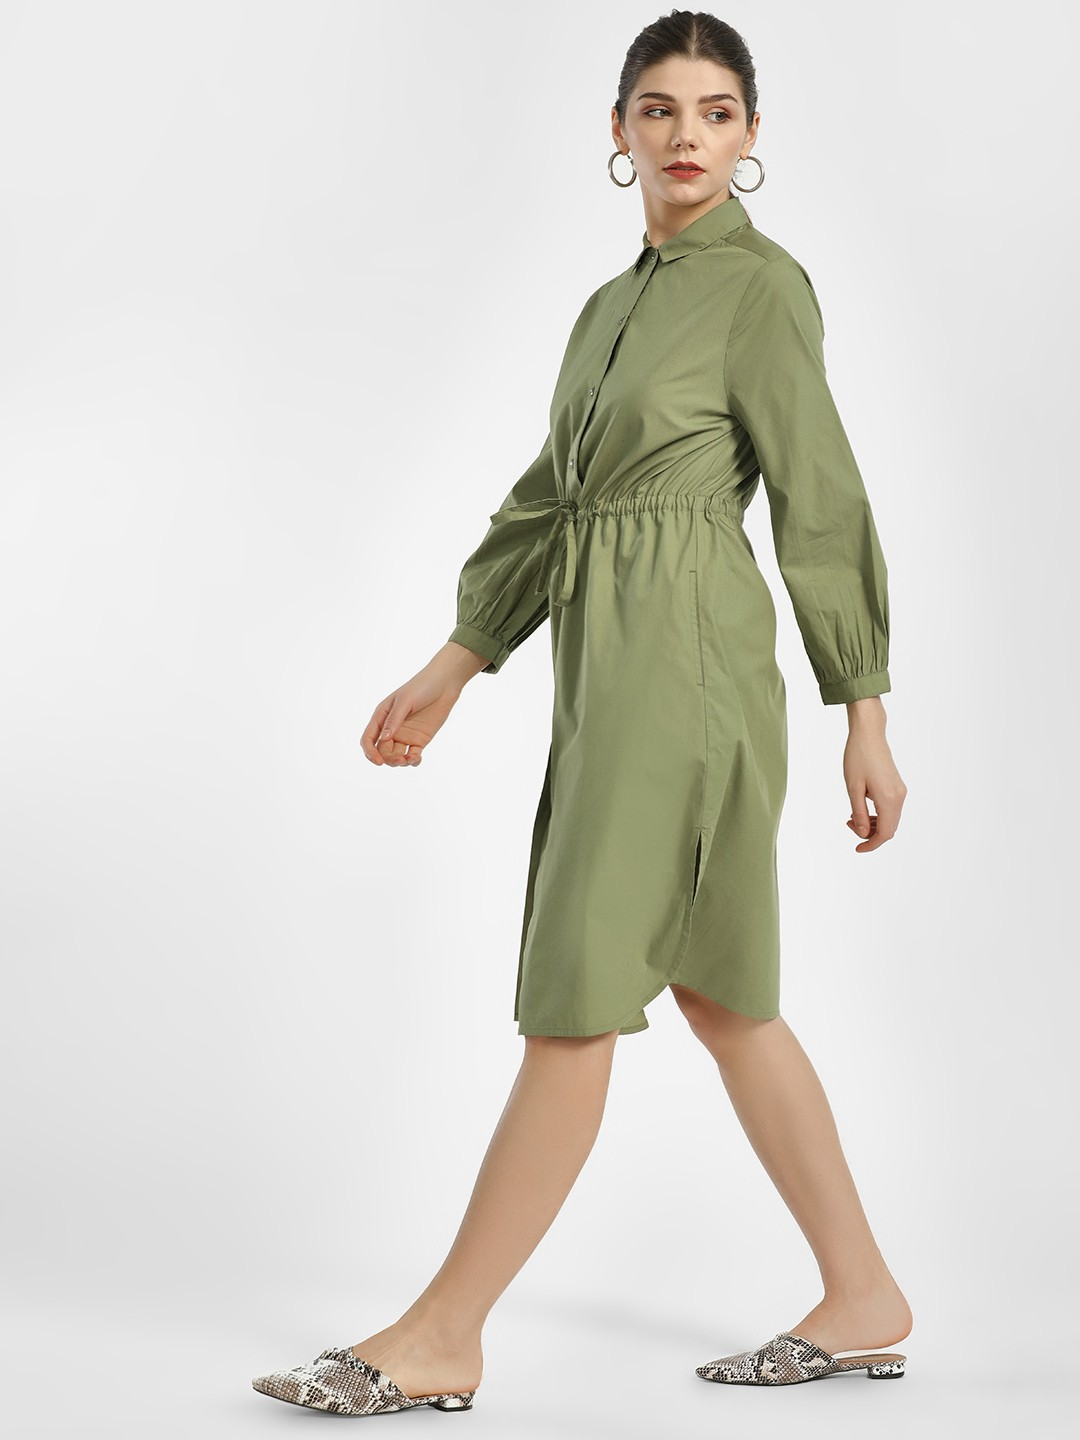 PostFold Olive Green Front Tie-Up Shirt Dress 1